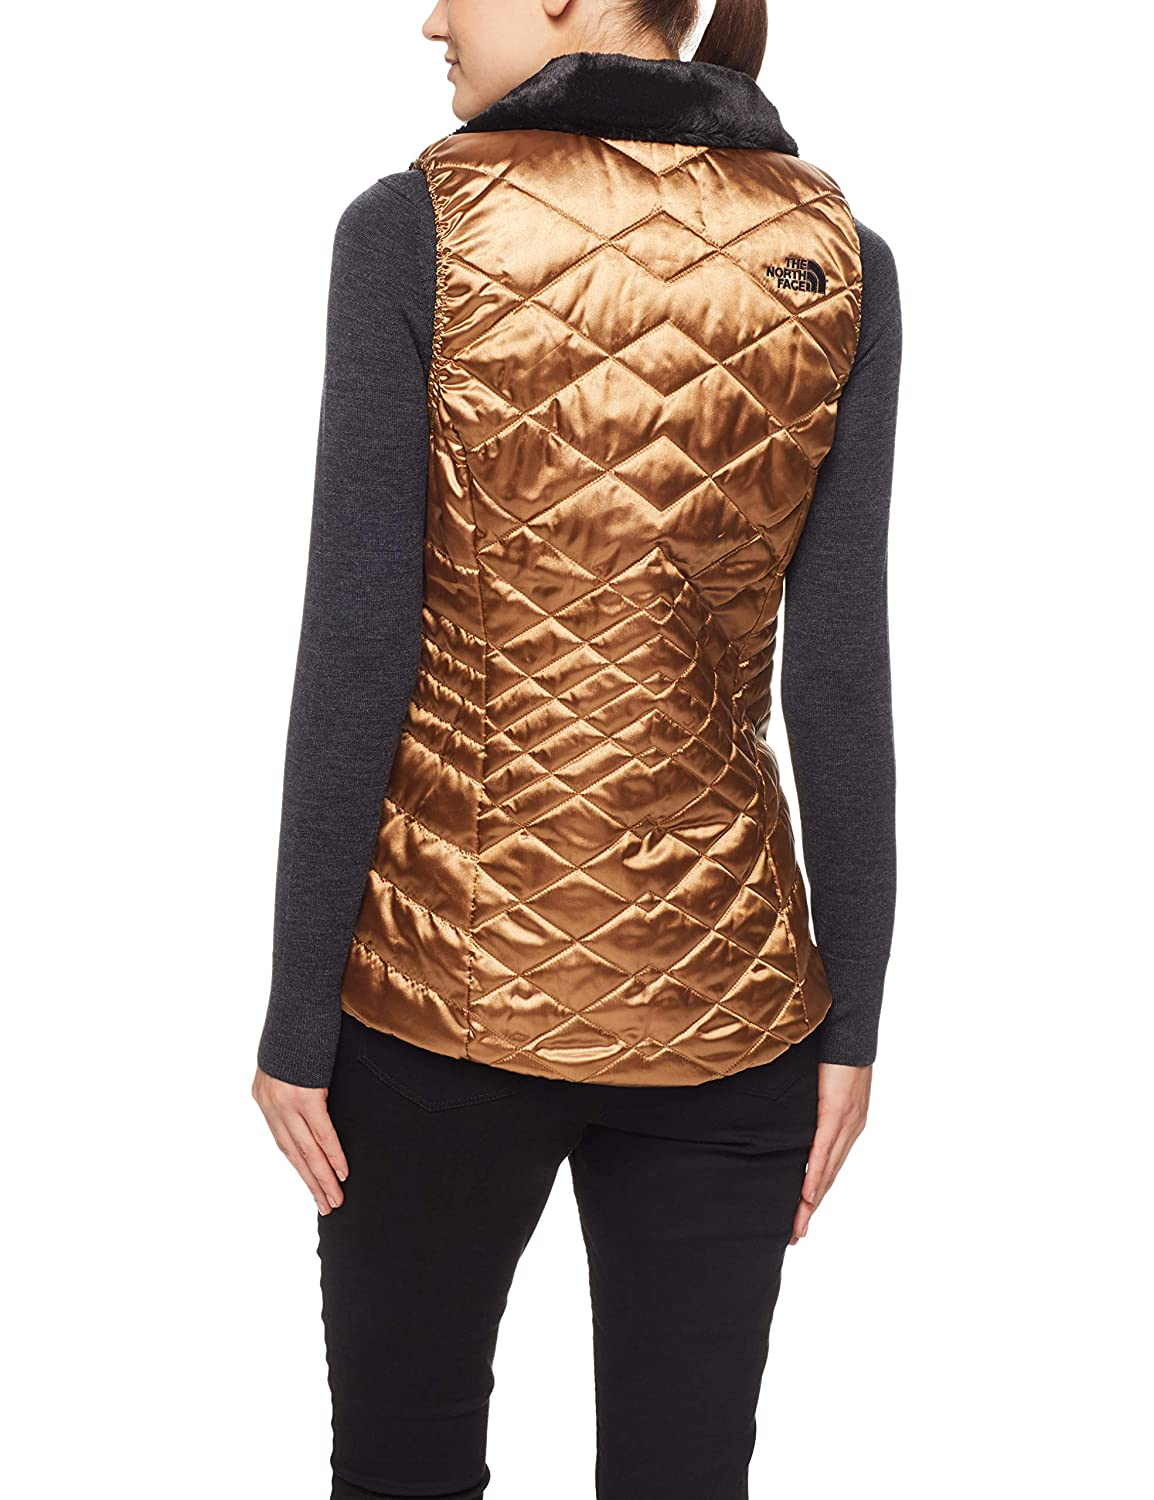 dbf4df088395 The North Face Women s Mossbud Insulated Reversible Vest at Amazon Women s  Clothing store